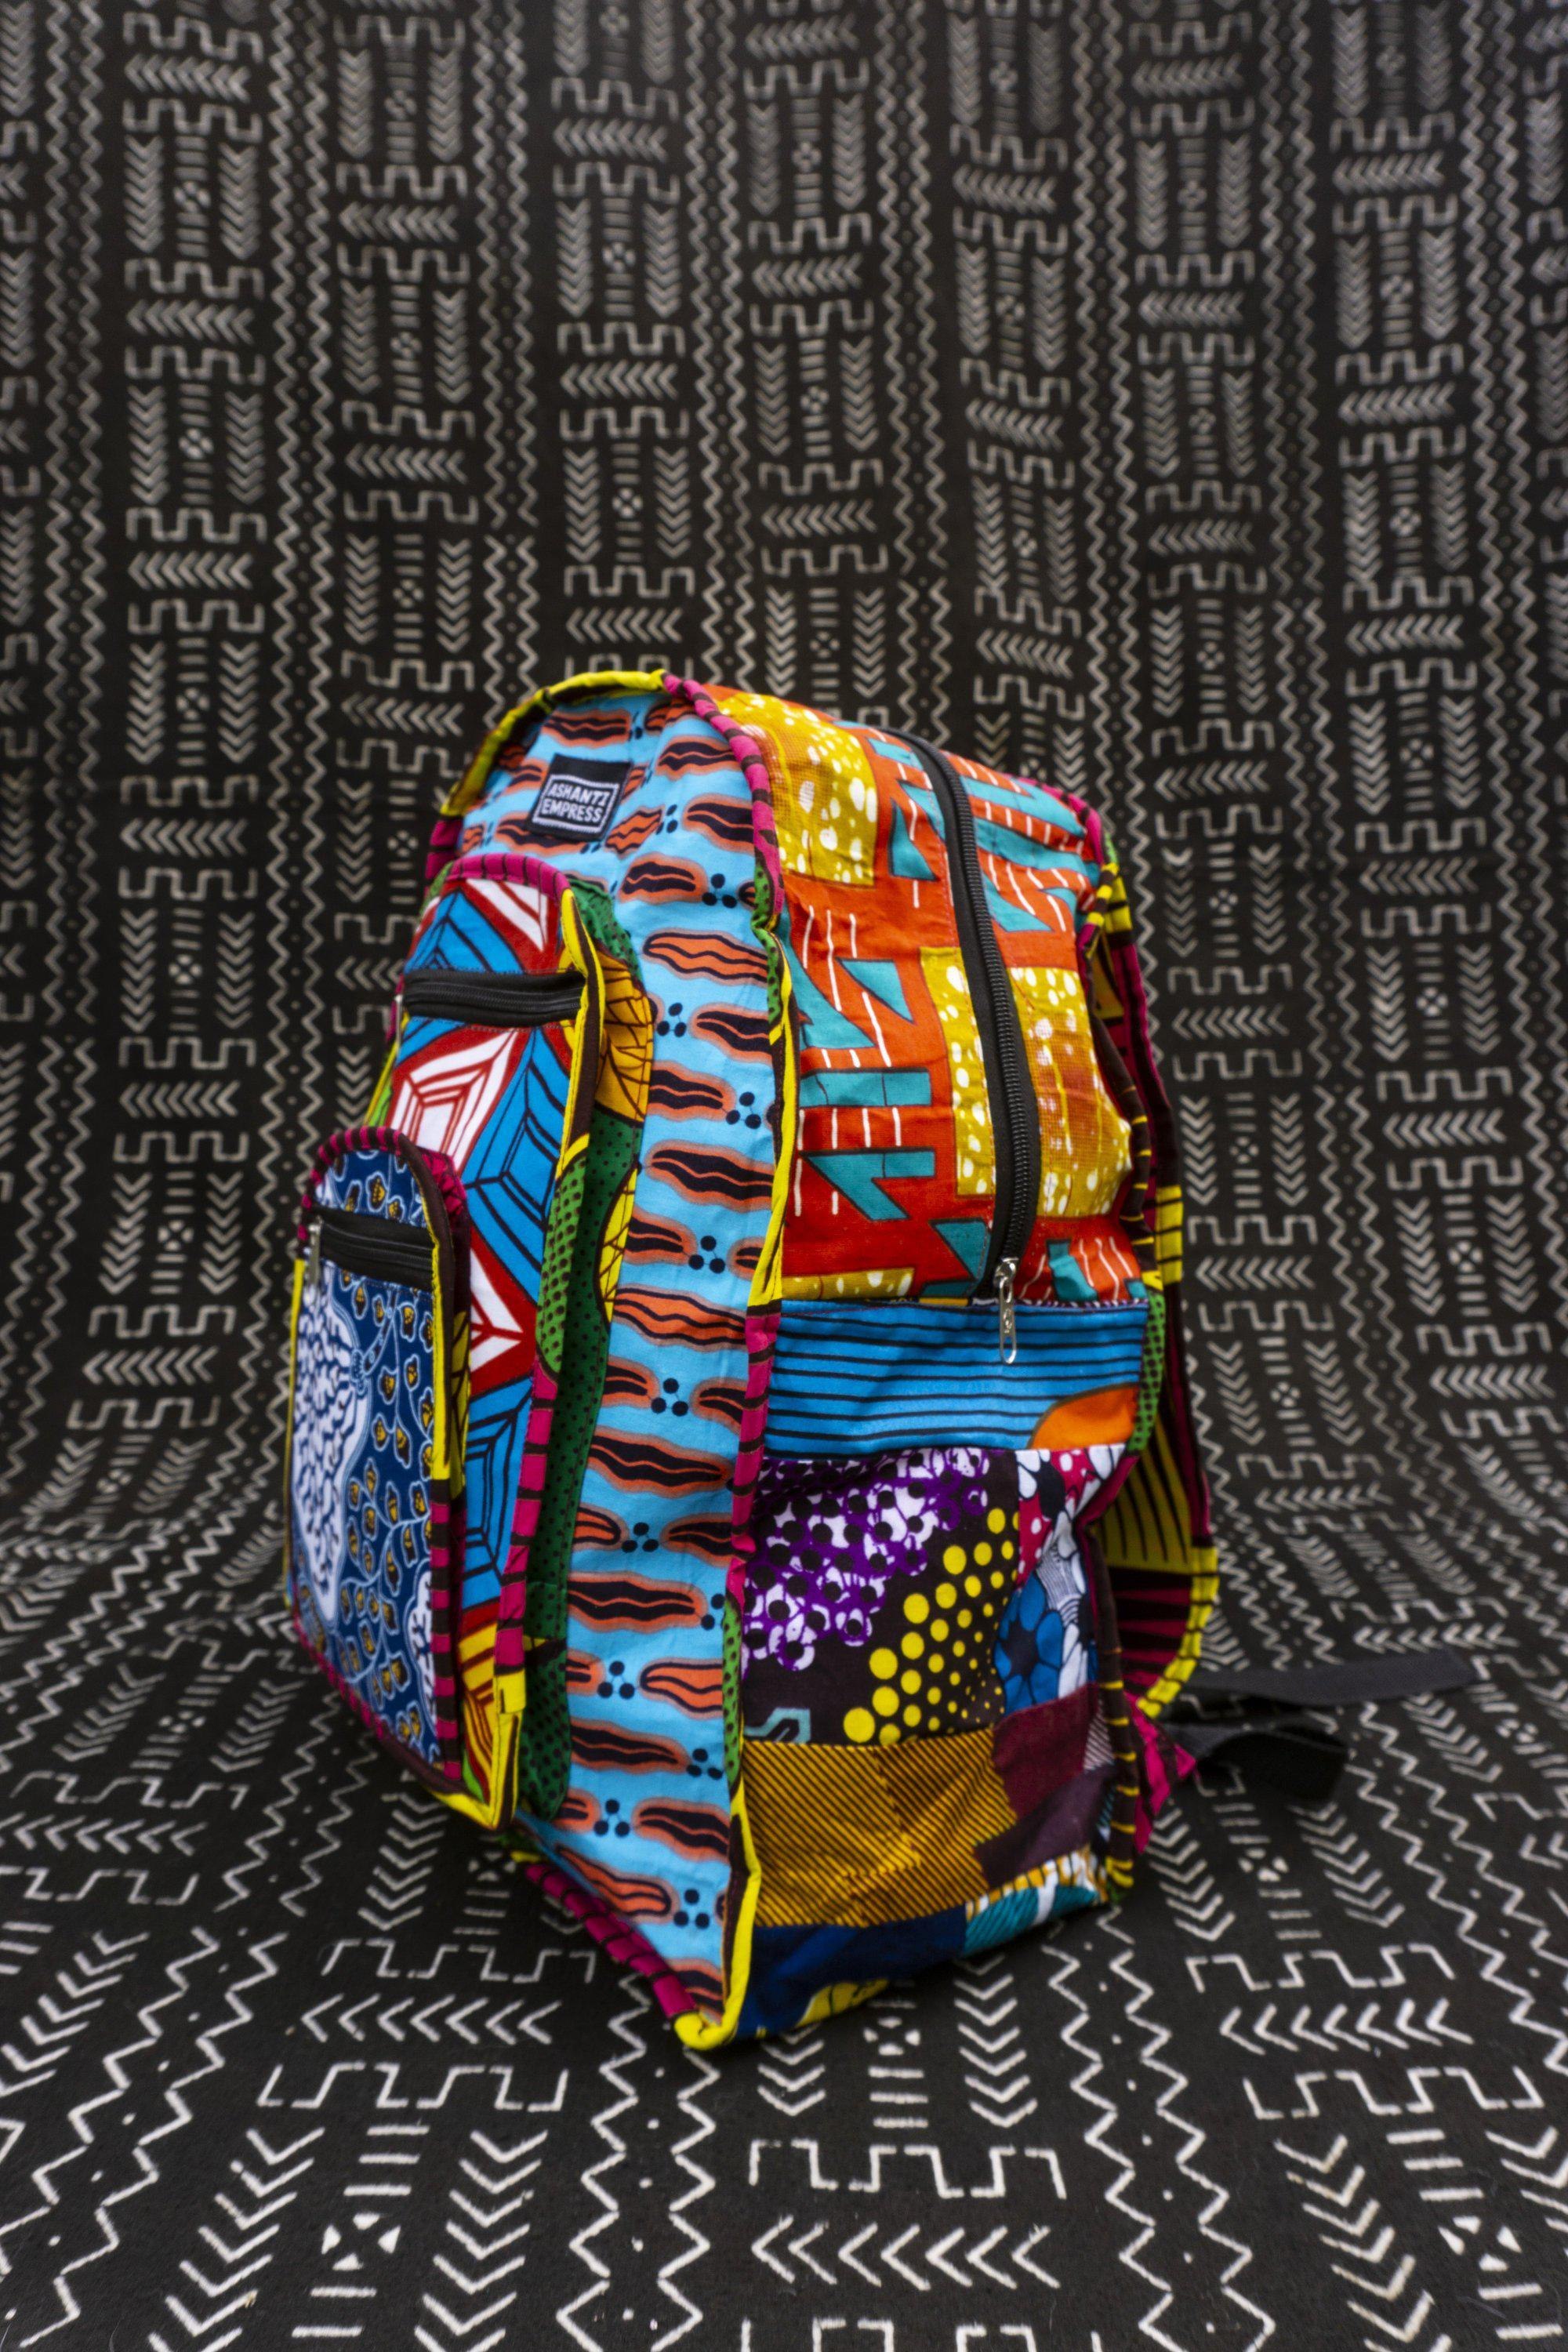 African Print Patchwork Backpack / Colour Me Crazy Backpack / Colourful School Backpack / Recycled Fabric Backpack / Eco bag